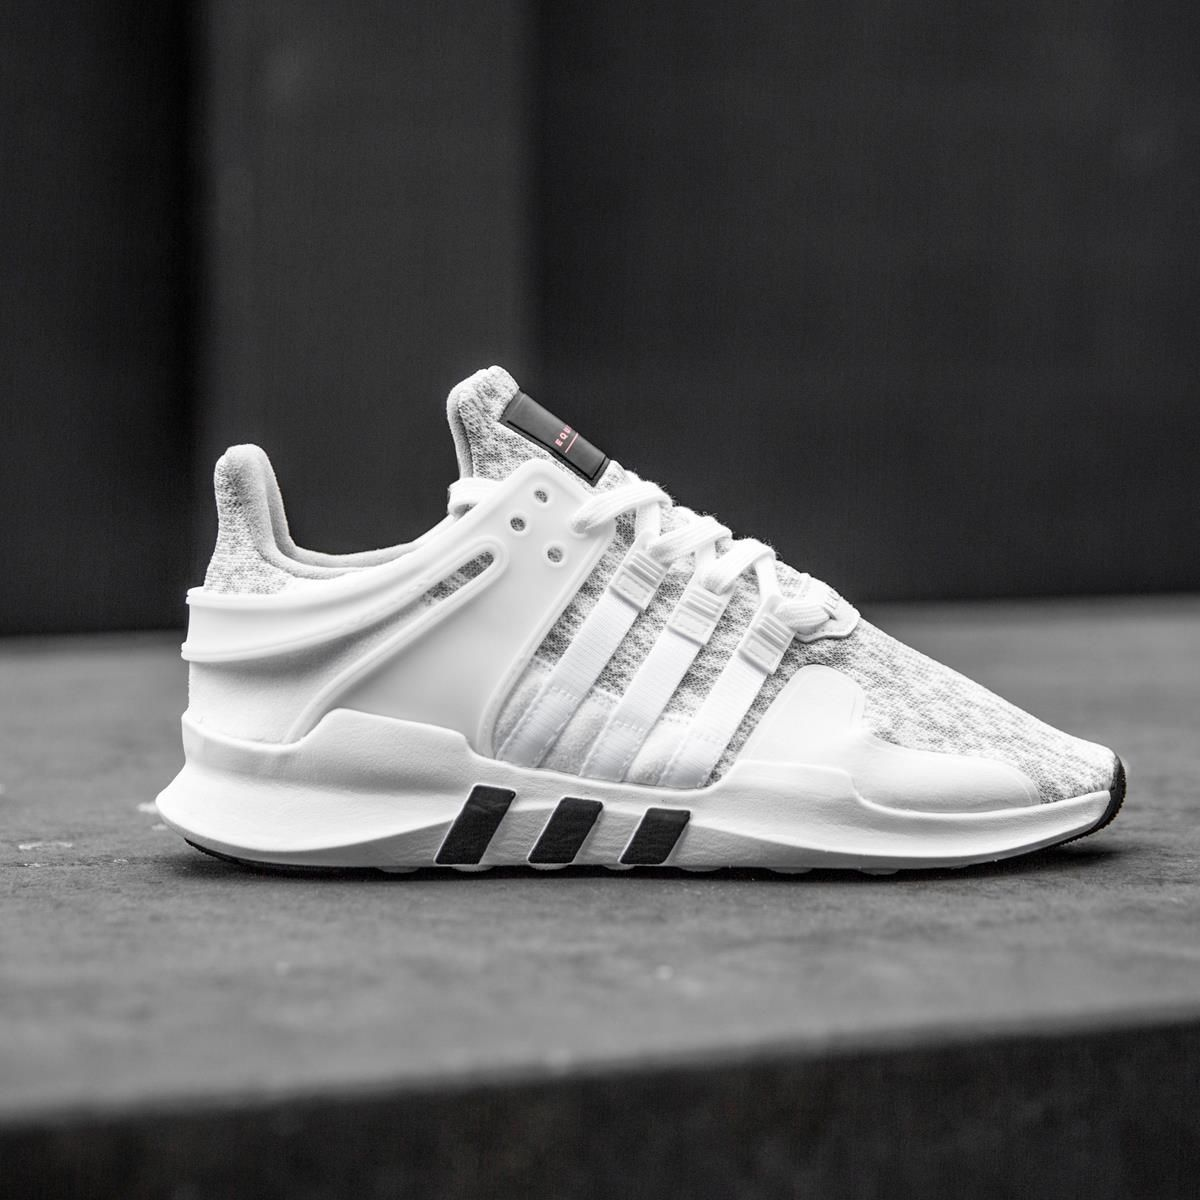 innovative design 6c26d 72902 adidas EQT Support ADV Adidas Sneaker Nmd, Adidas Sneakers, Shoes Sneakers,  Nike Tanjun